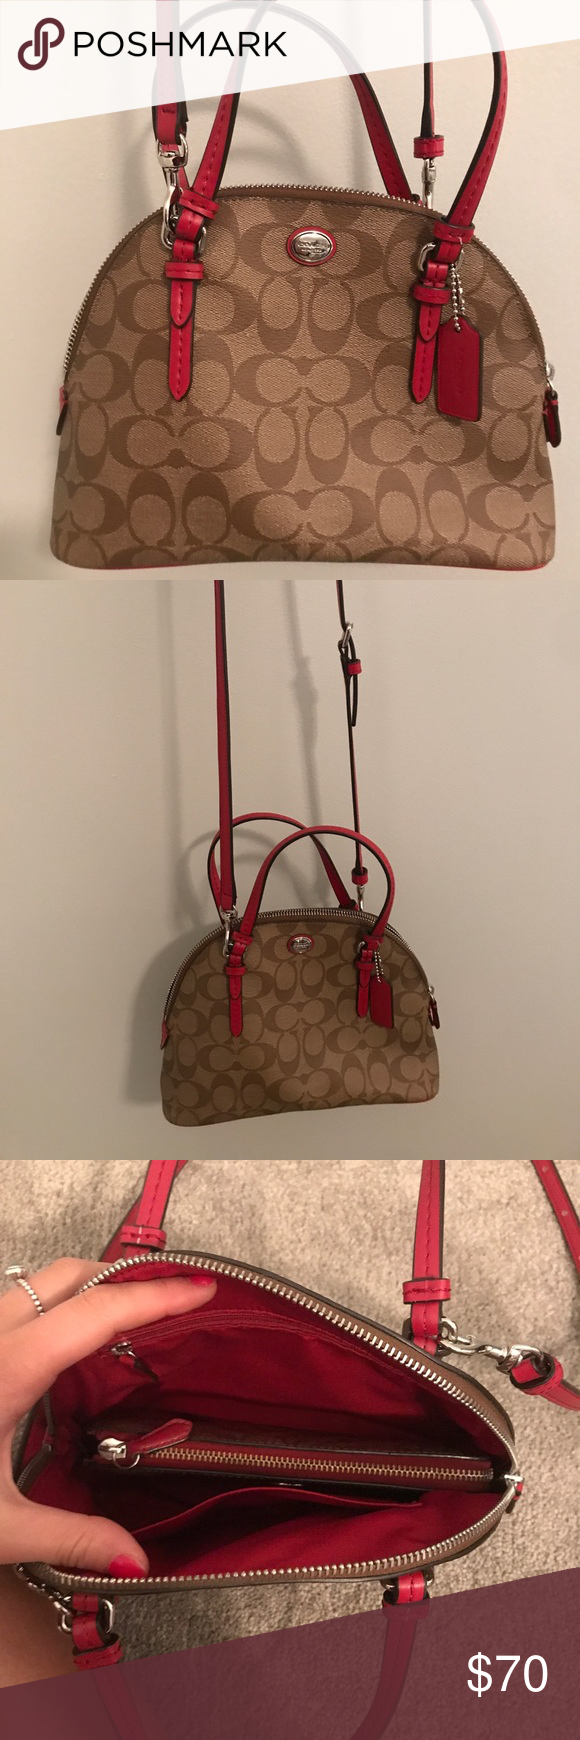 50e91a87224 Tan and red Coach crossbody AND matching wallet This Browns and red coach  bag and wallet have never been used. In perfect condition!